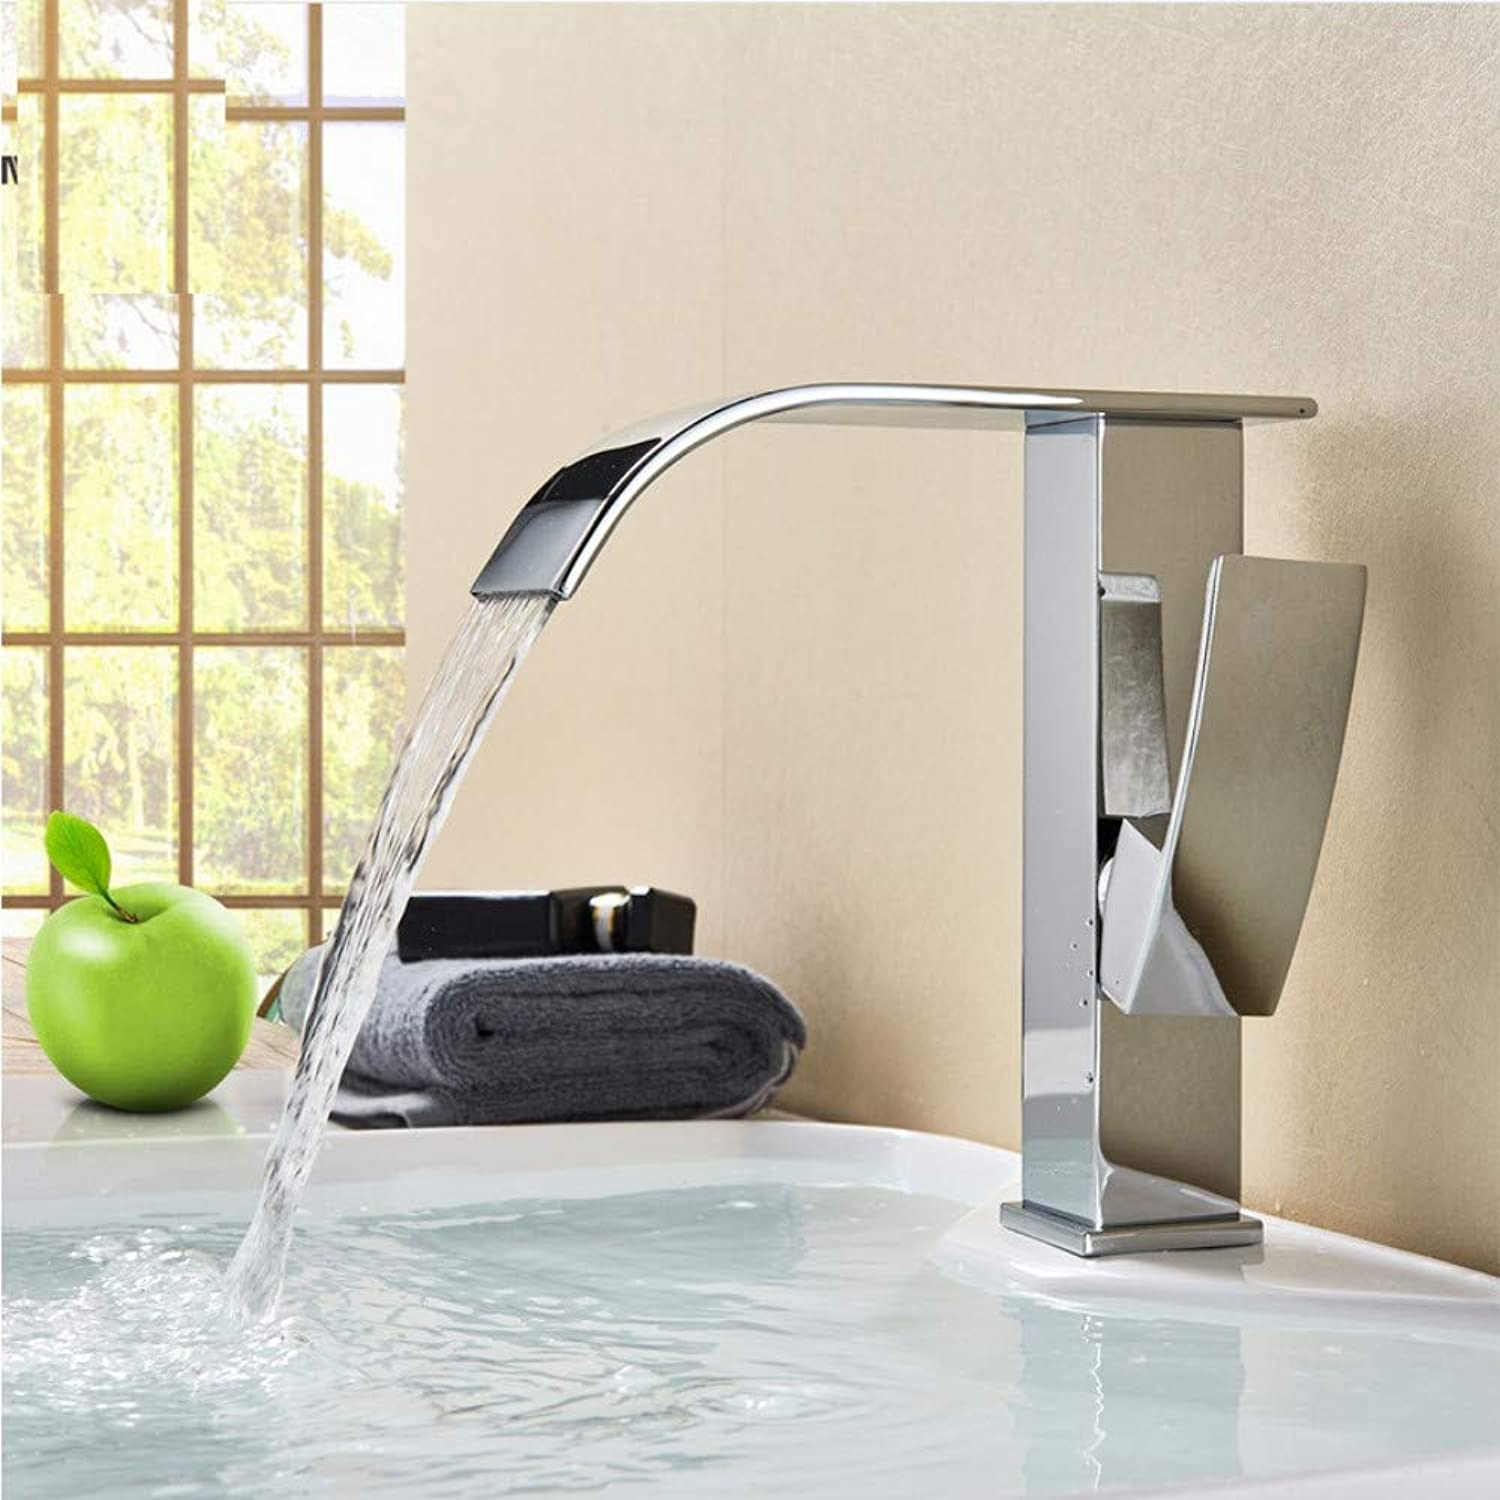 Bathroom Sink Tap Contemporary Chrome Waterfall Bathroom Basin Sink Faucet Single Handle Lavatory Sink Tap Deck Mounted